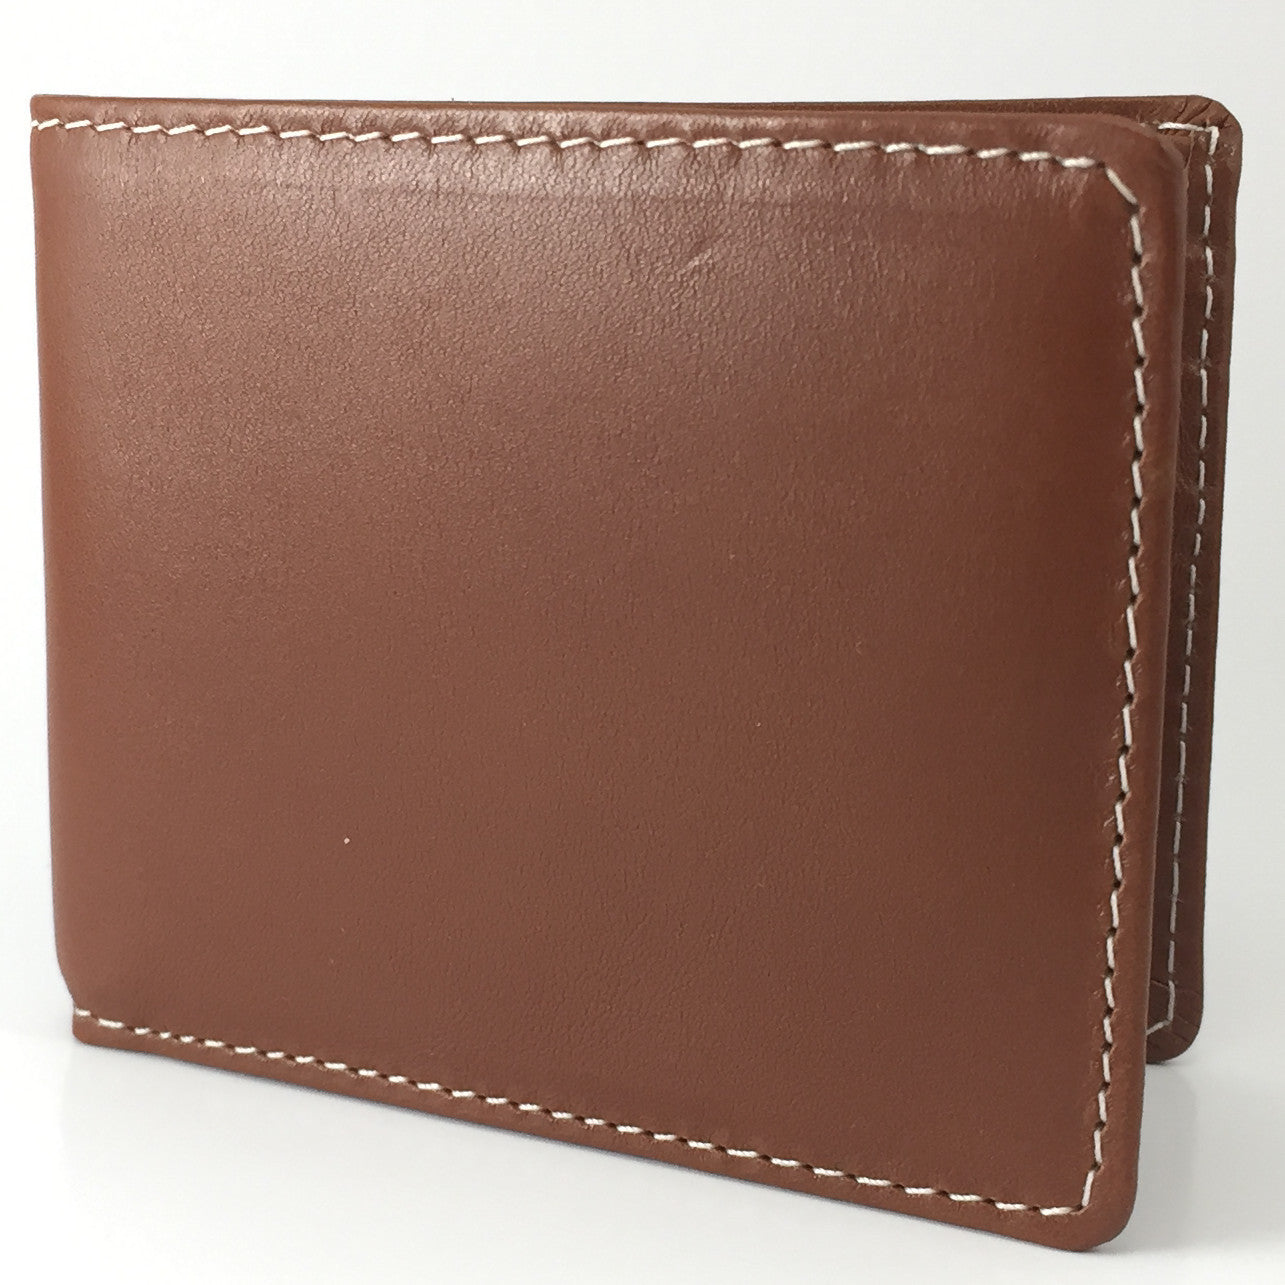 Classic Billfold Wallet Upright